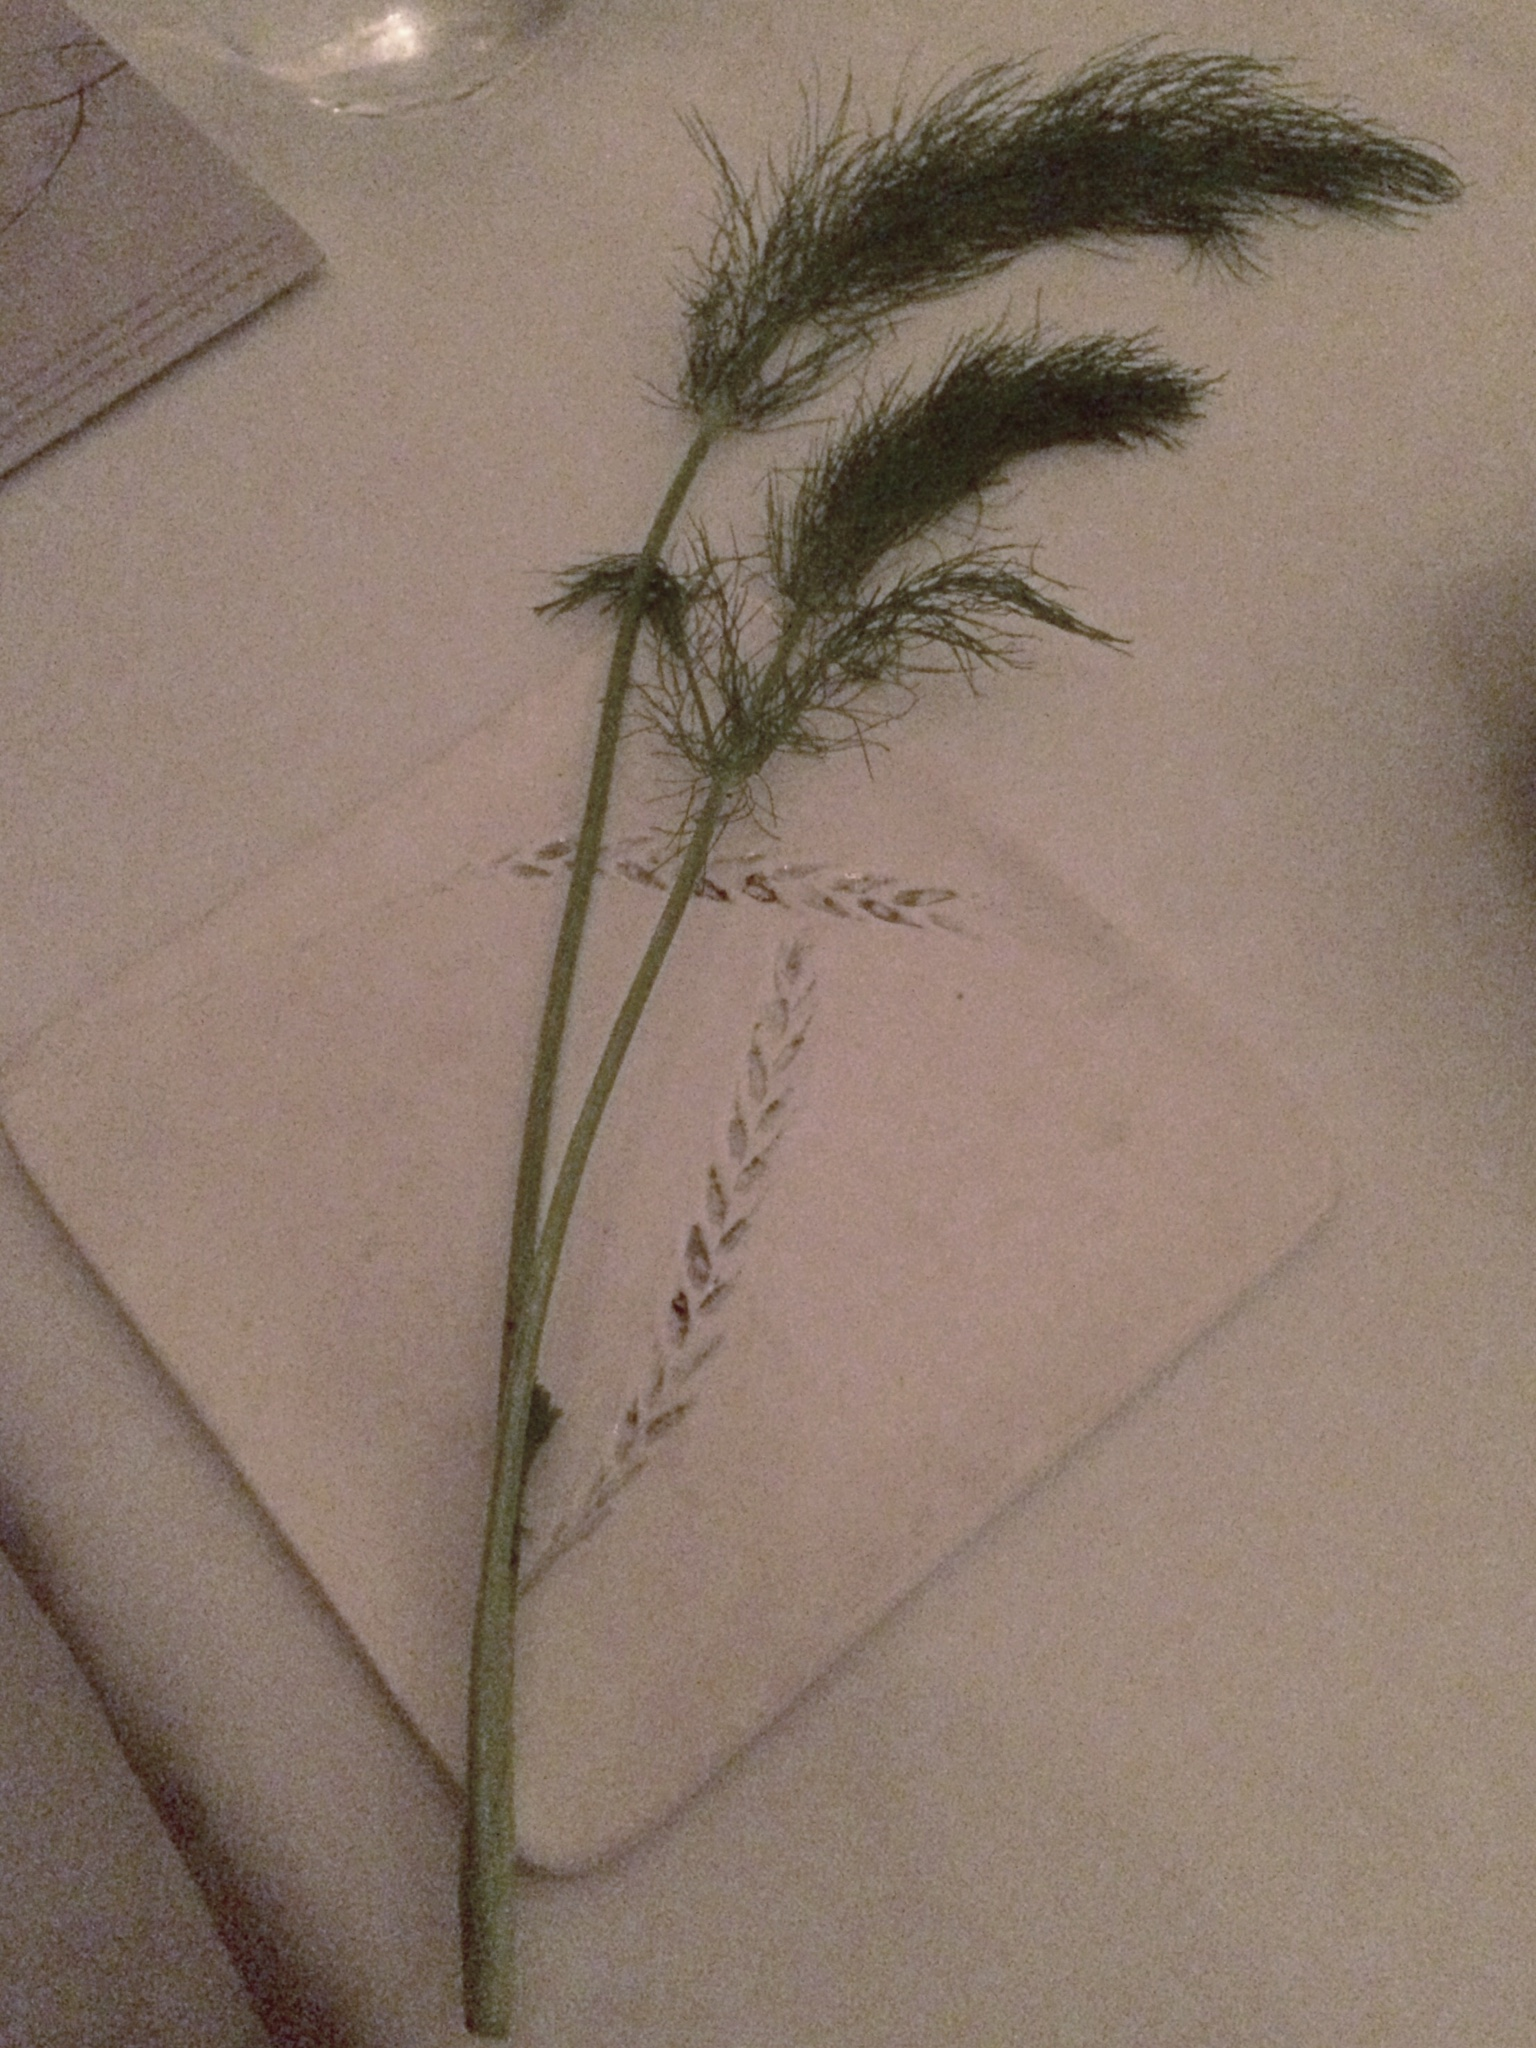 Orion fennel.